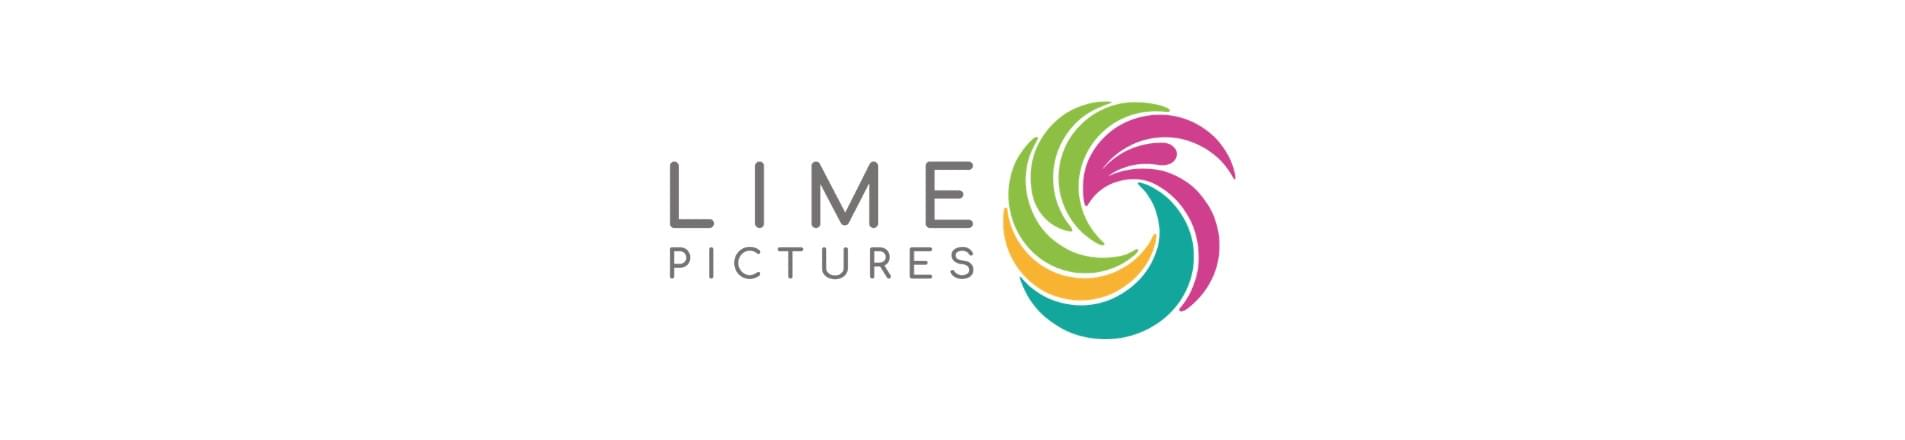 Lime Pictures Banner